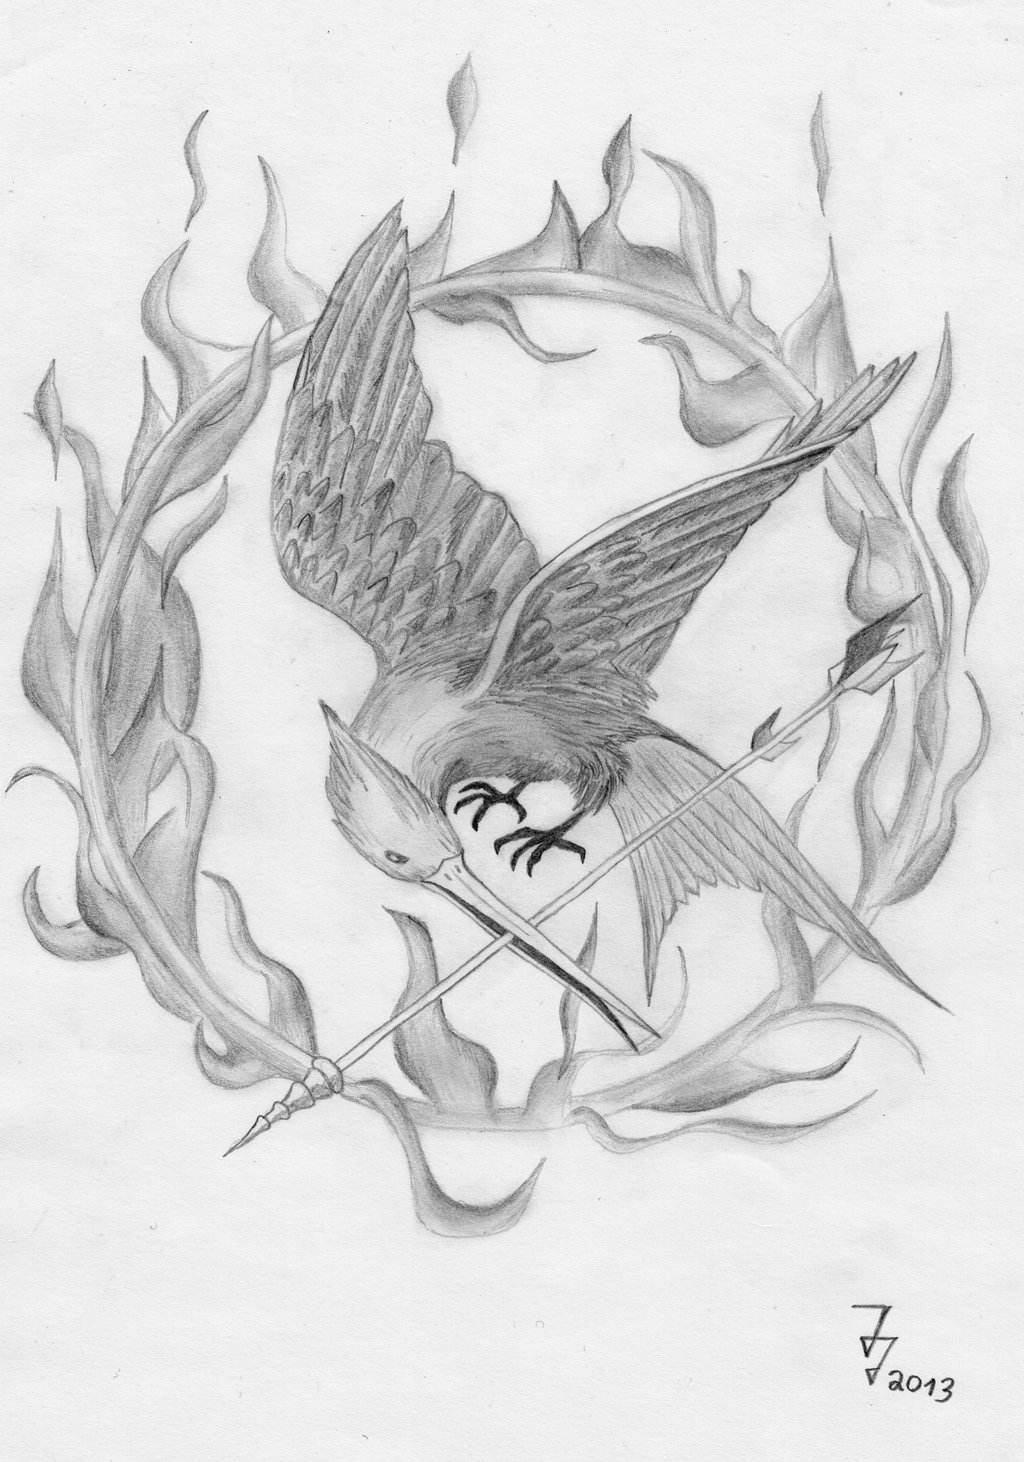 Drawn sykol hunger games Art with flames flames drawing